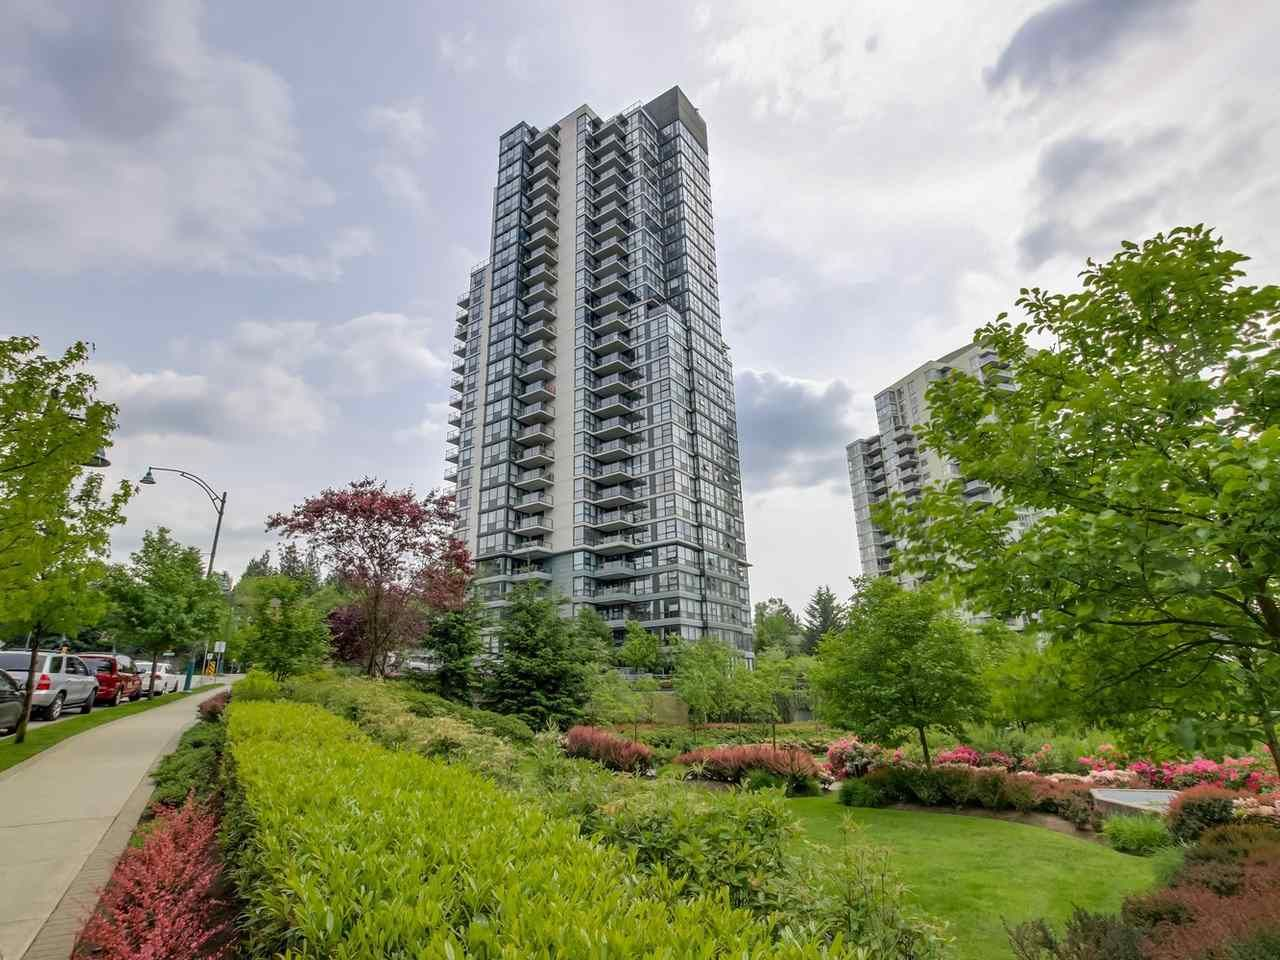 Main Photo: 203 288 UNGLESS WAY in Port Moody: Port Moody Centre Condo for sale : MLS®# R2071333